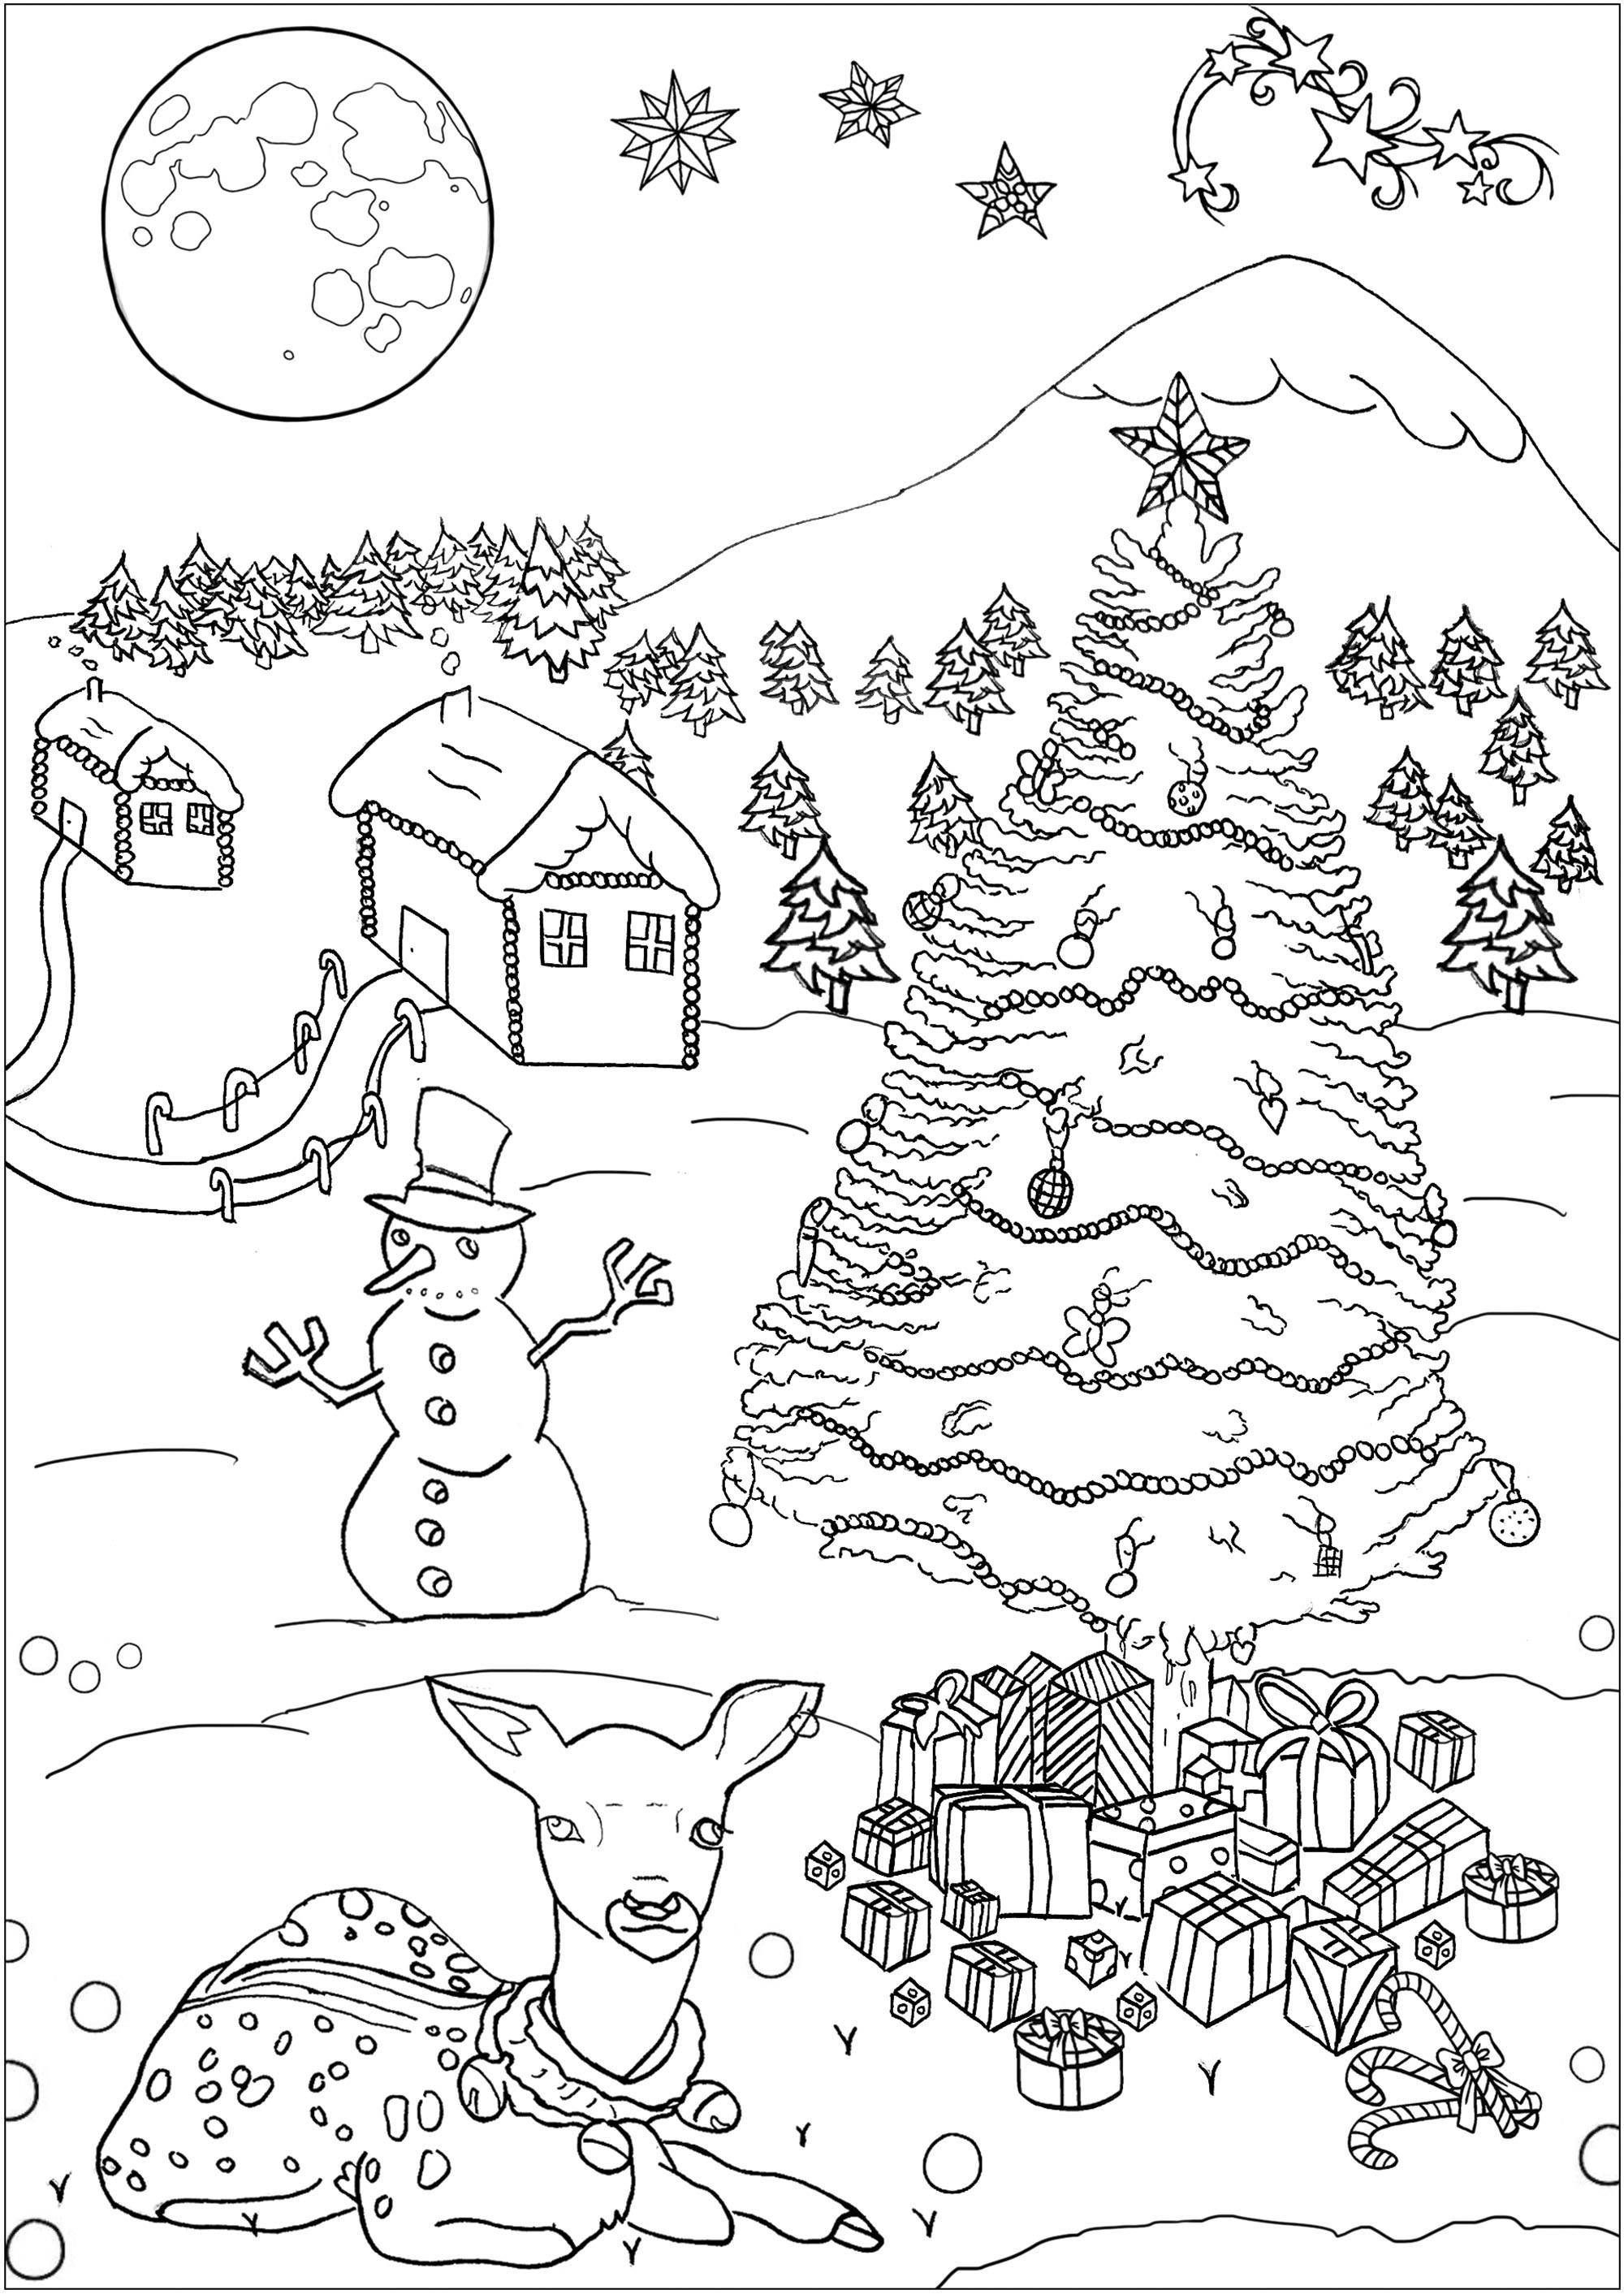 Funny Christmas coloring page for kids